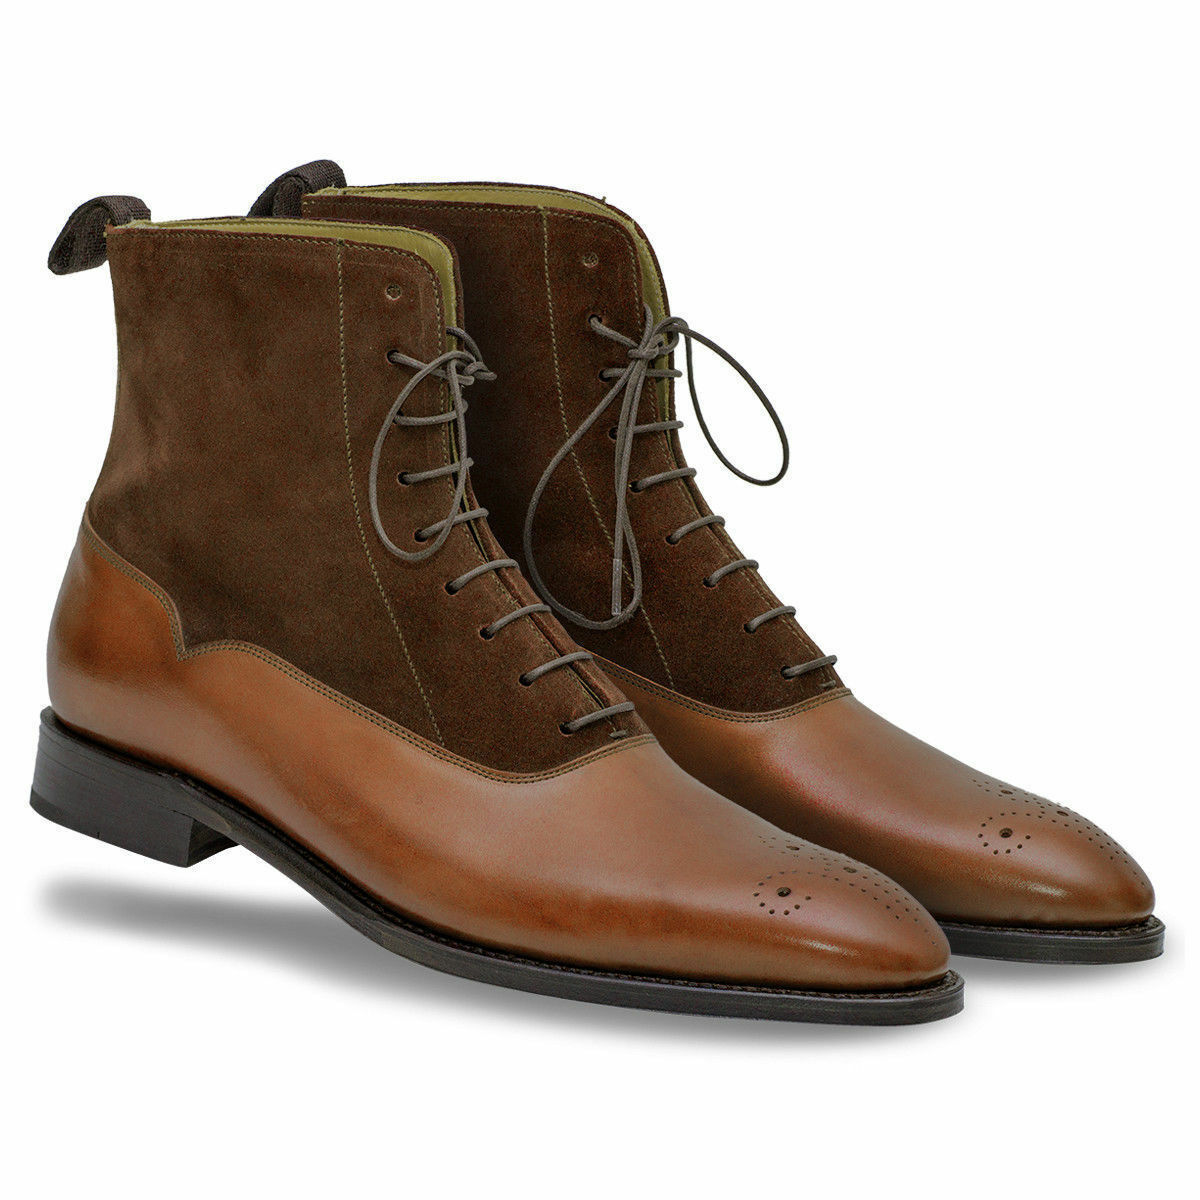 MEN HANDMADE GENUINE SUEDE & & & LEATHER SHOES CHELSEA TUXEDO BROWN DRESS BOOTS f8dd32